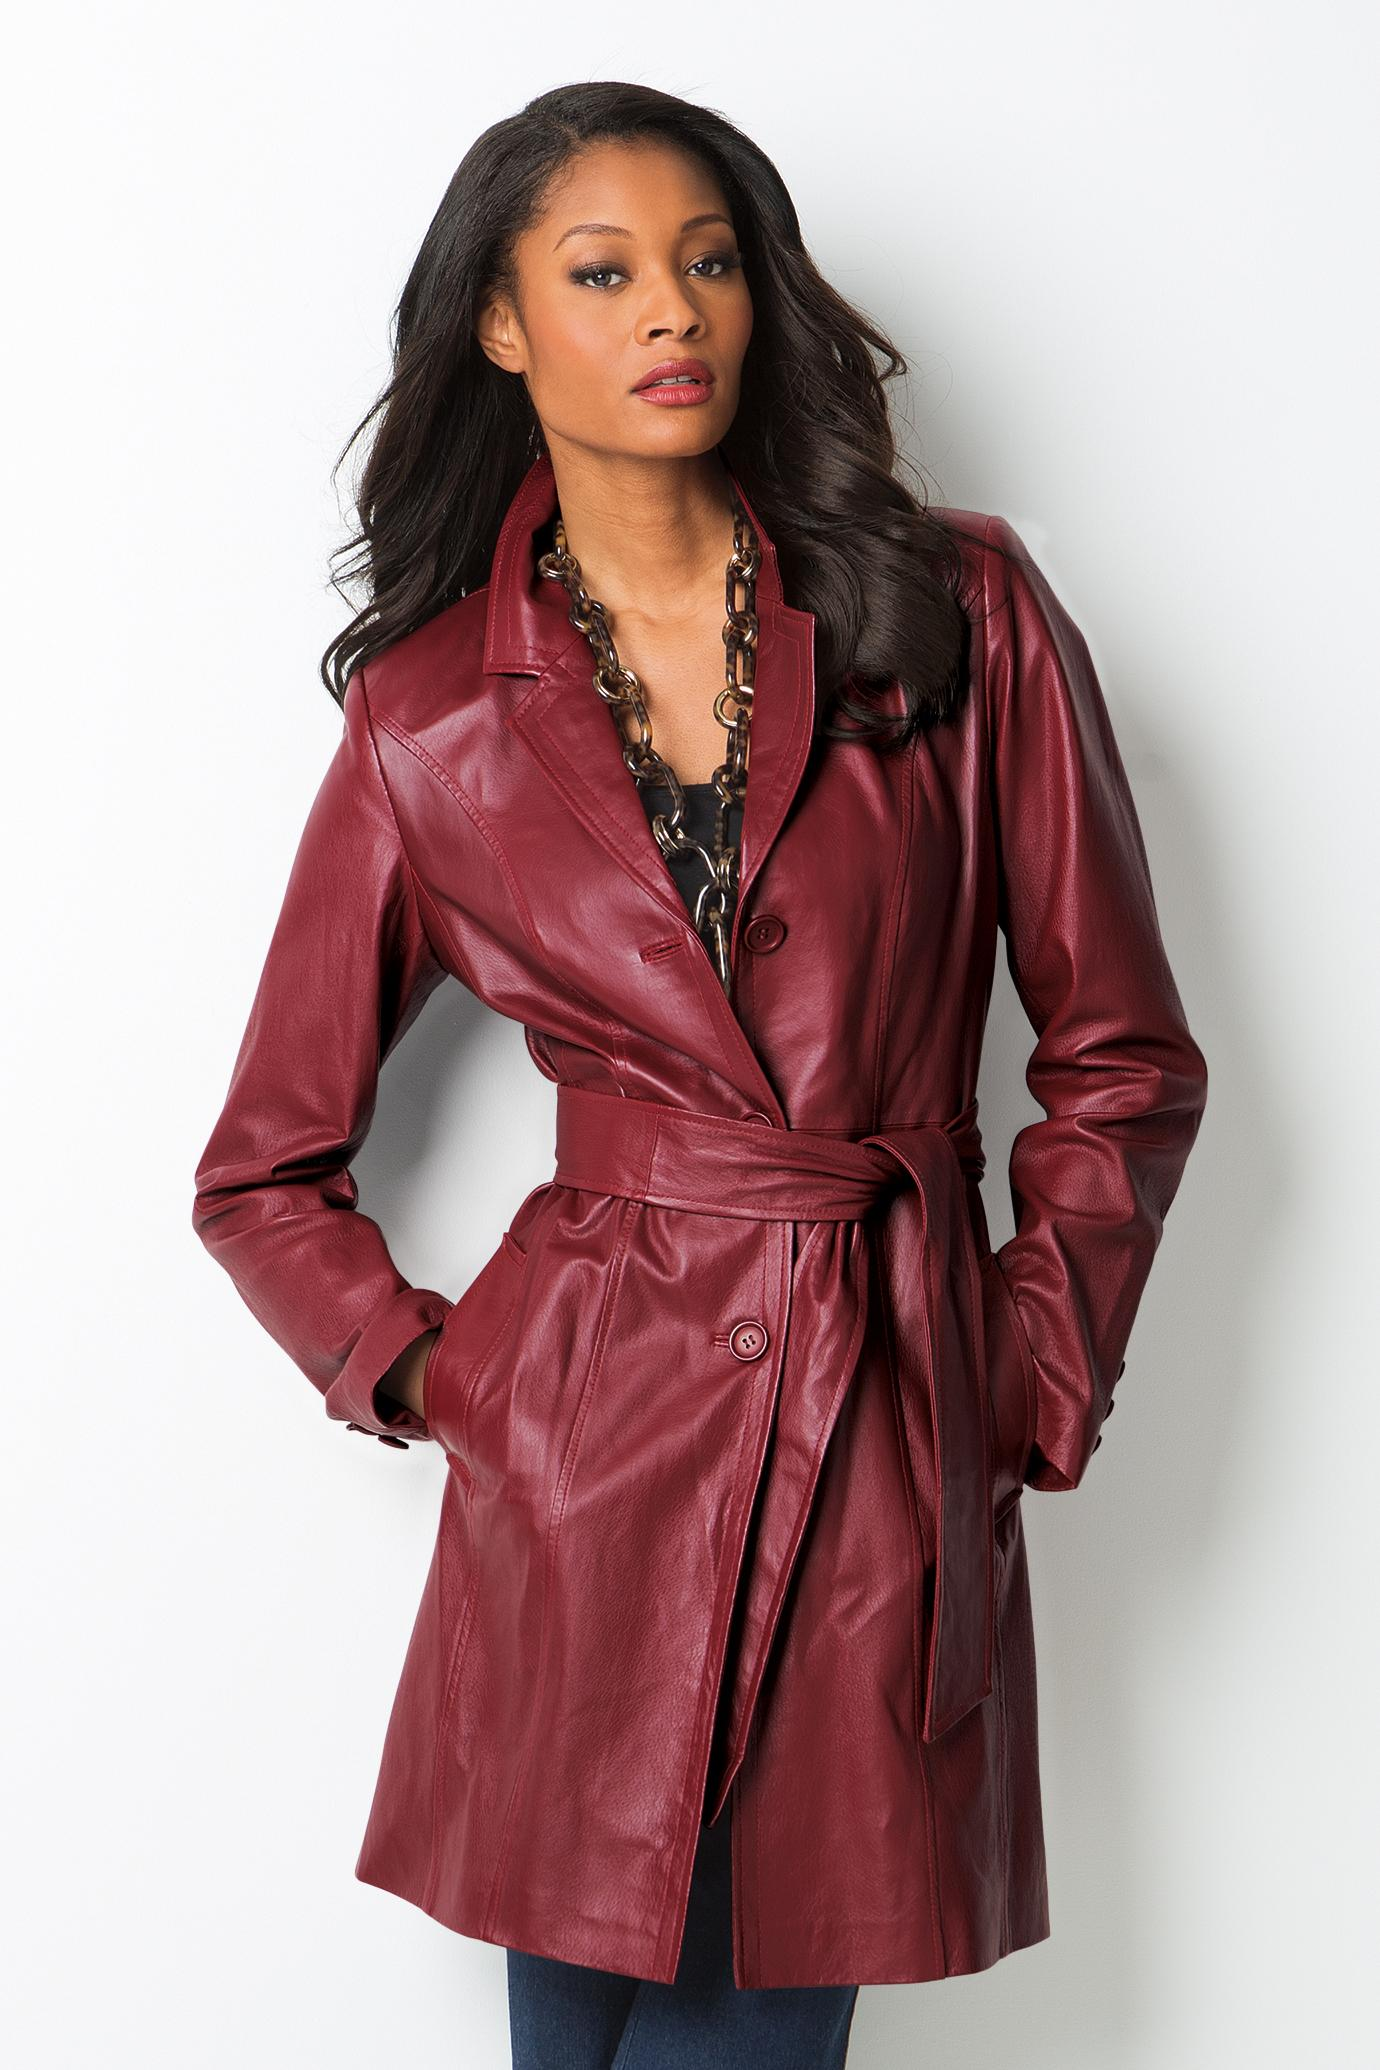 MetroStyle Belted Leather Trench (metrostyle.com, $140)